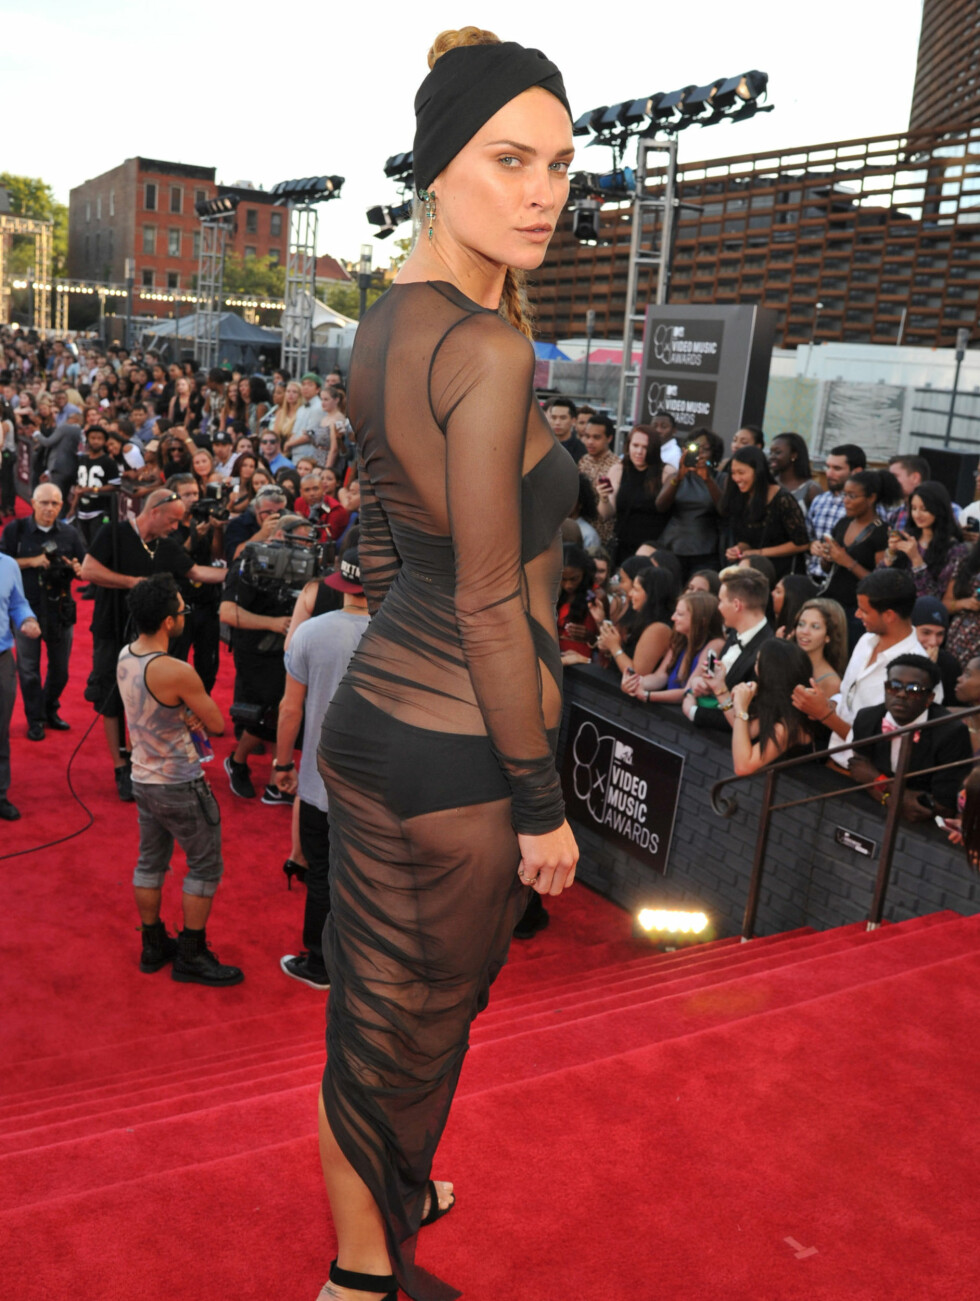 MTV MUSIC VIDEO AWARDS 2013: Erin Wasson Foto: WireImage/Getty Images/All Over Press